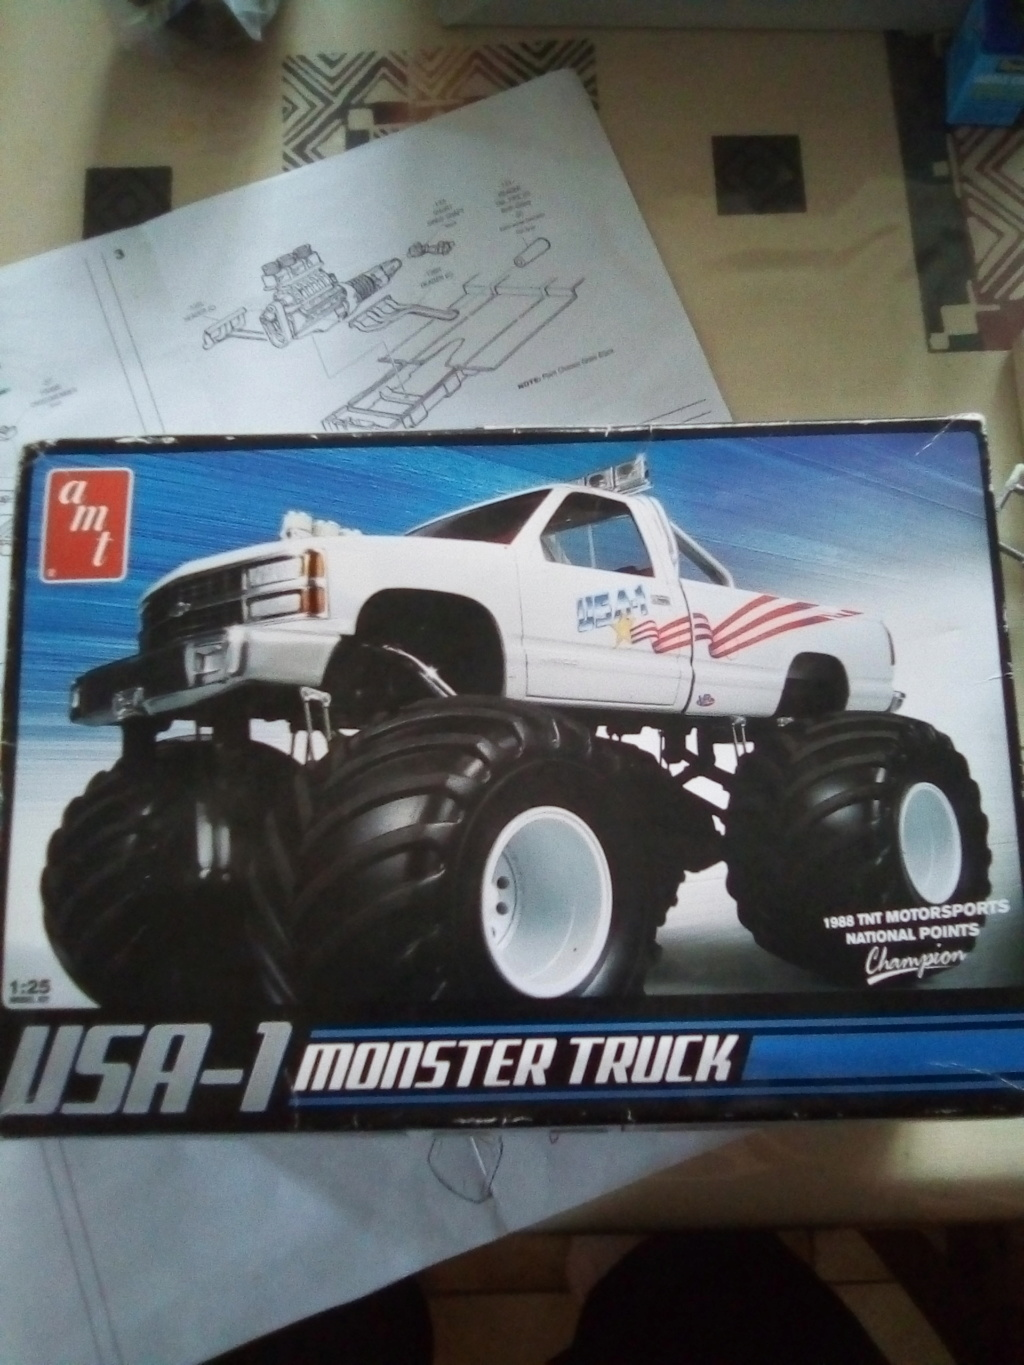 usa 1 Monster truck amt 1/25 Img_2107